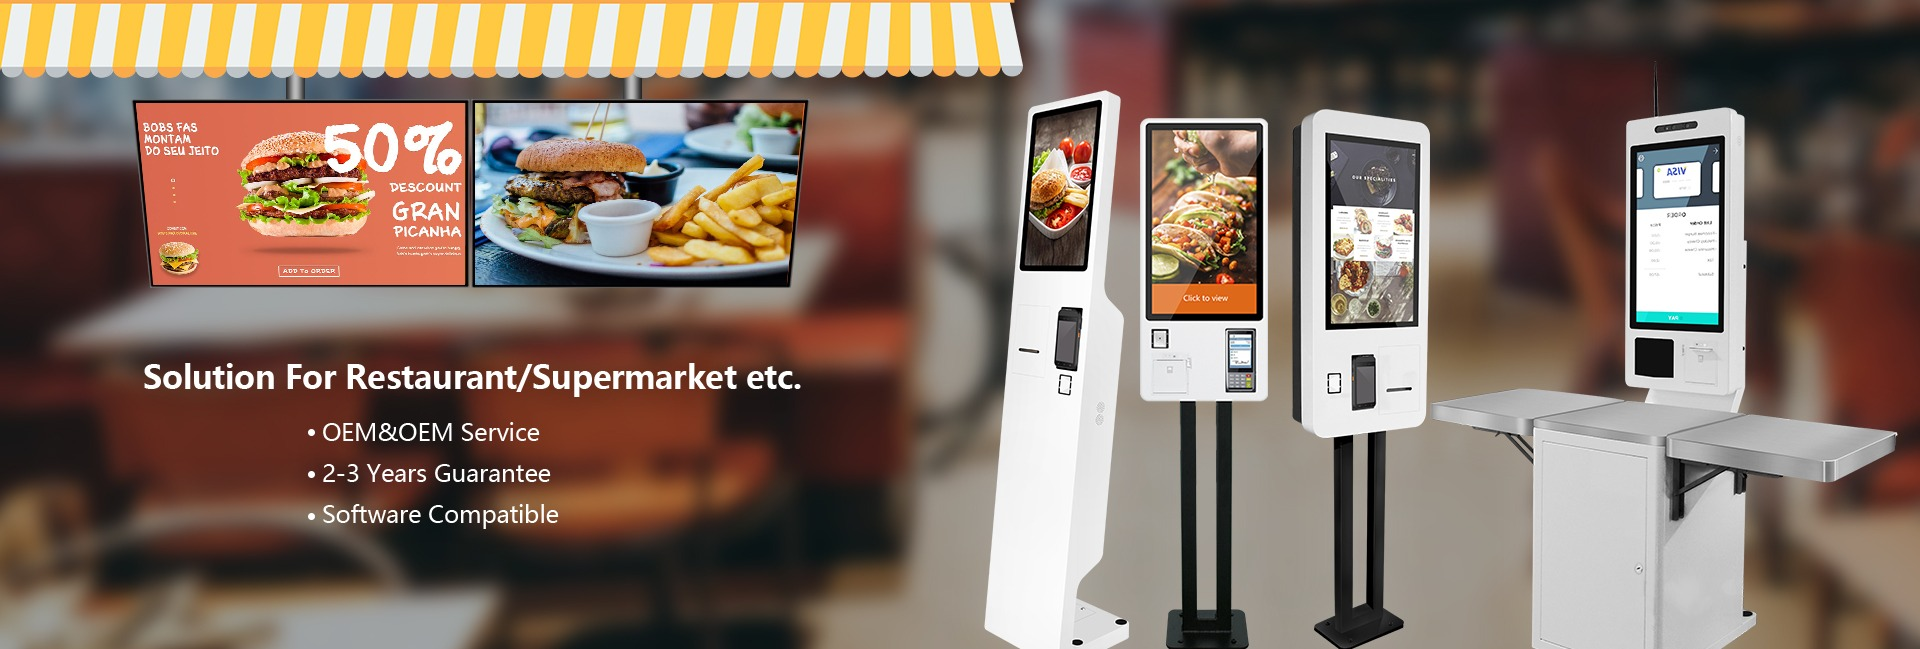 restaurant online ordering Digital Screens and self order kiosk